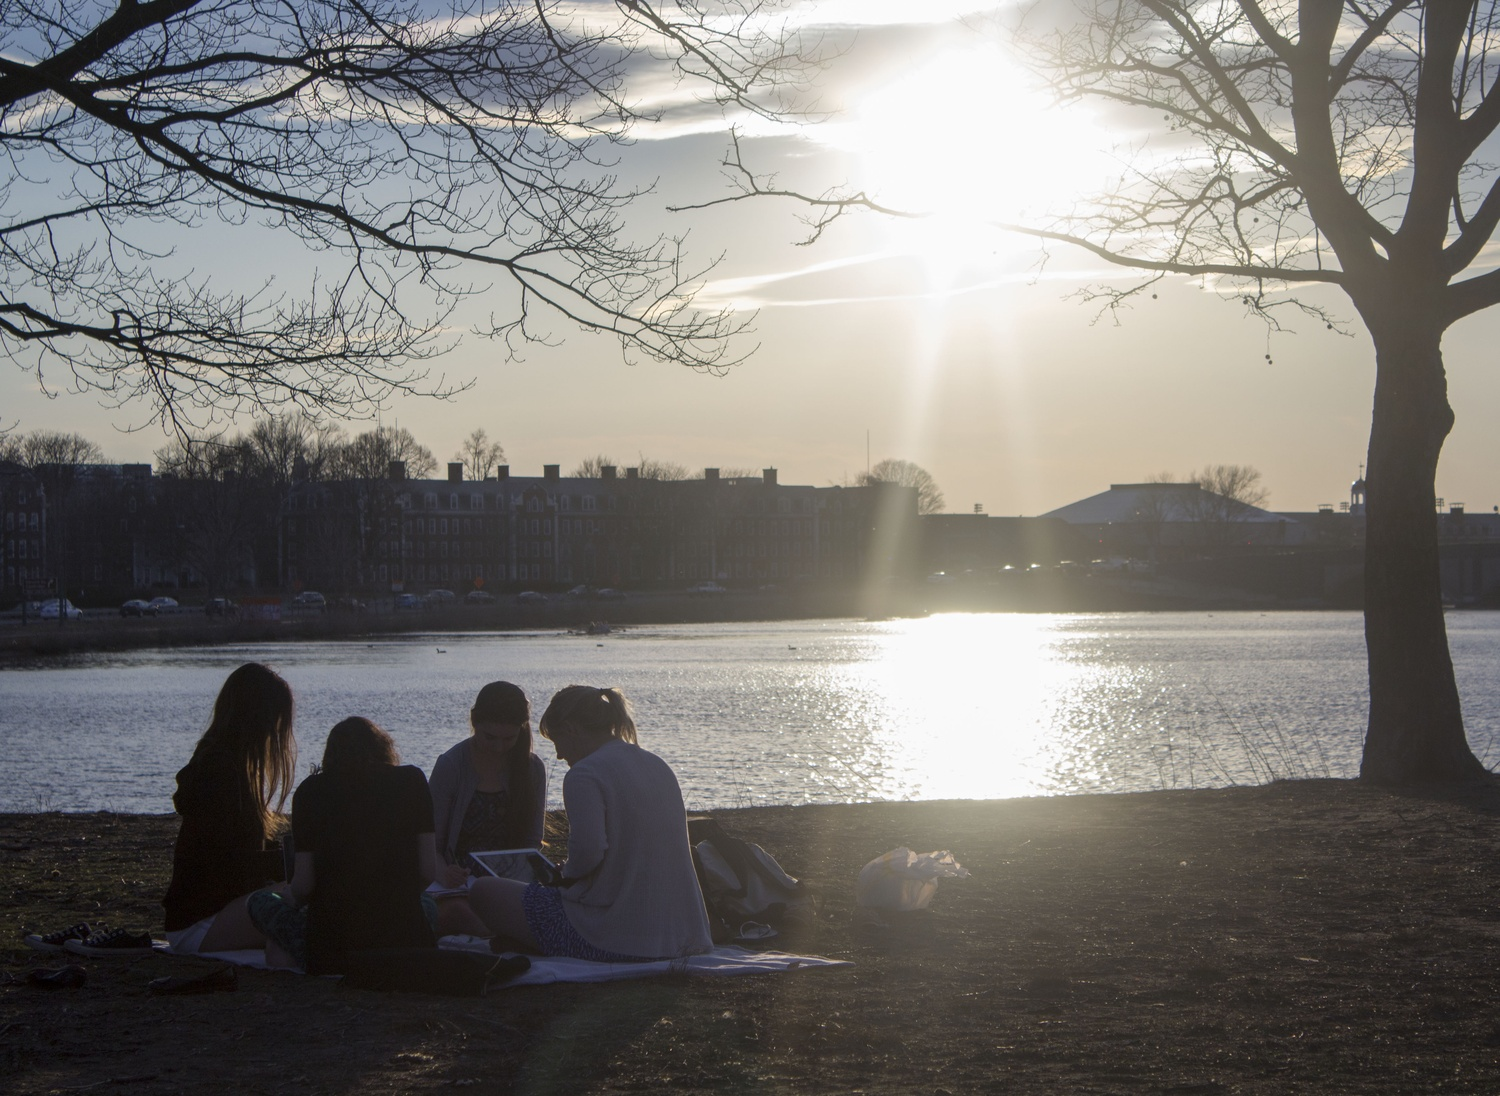 Students enjoy an evening of nice weather by the Charles River